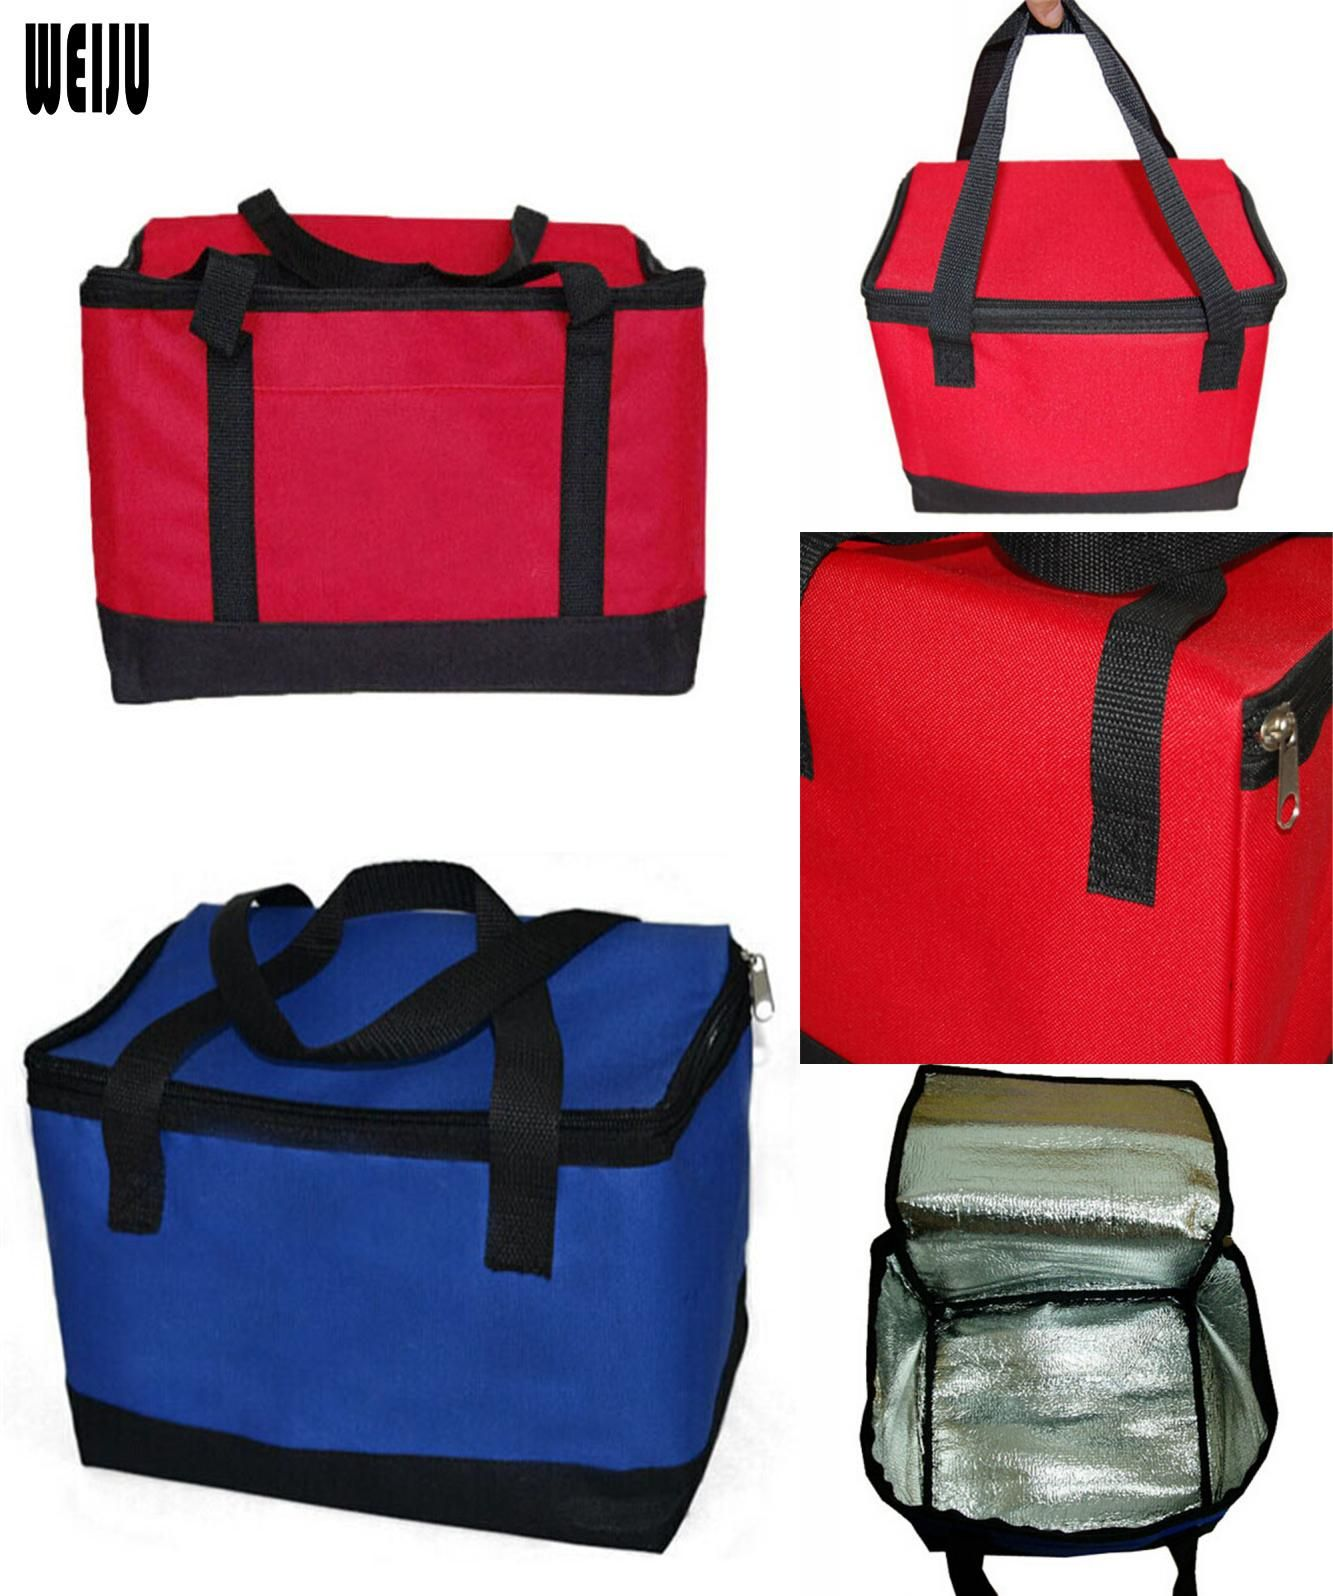 Visit To Buy Hot Sale Cooler Bag Folding Insulation Large Meal Package Lunch Picnic Bag Insulation Thermal Insulated Water Functional Bag Picnic Bag Fun Bags